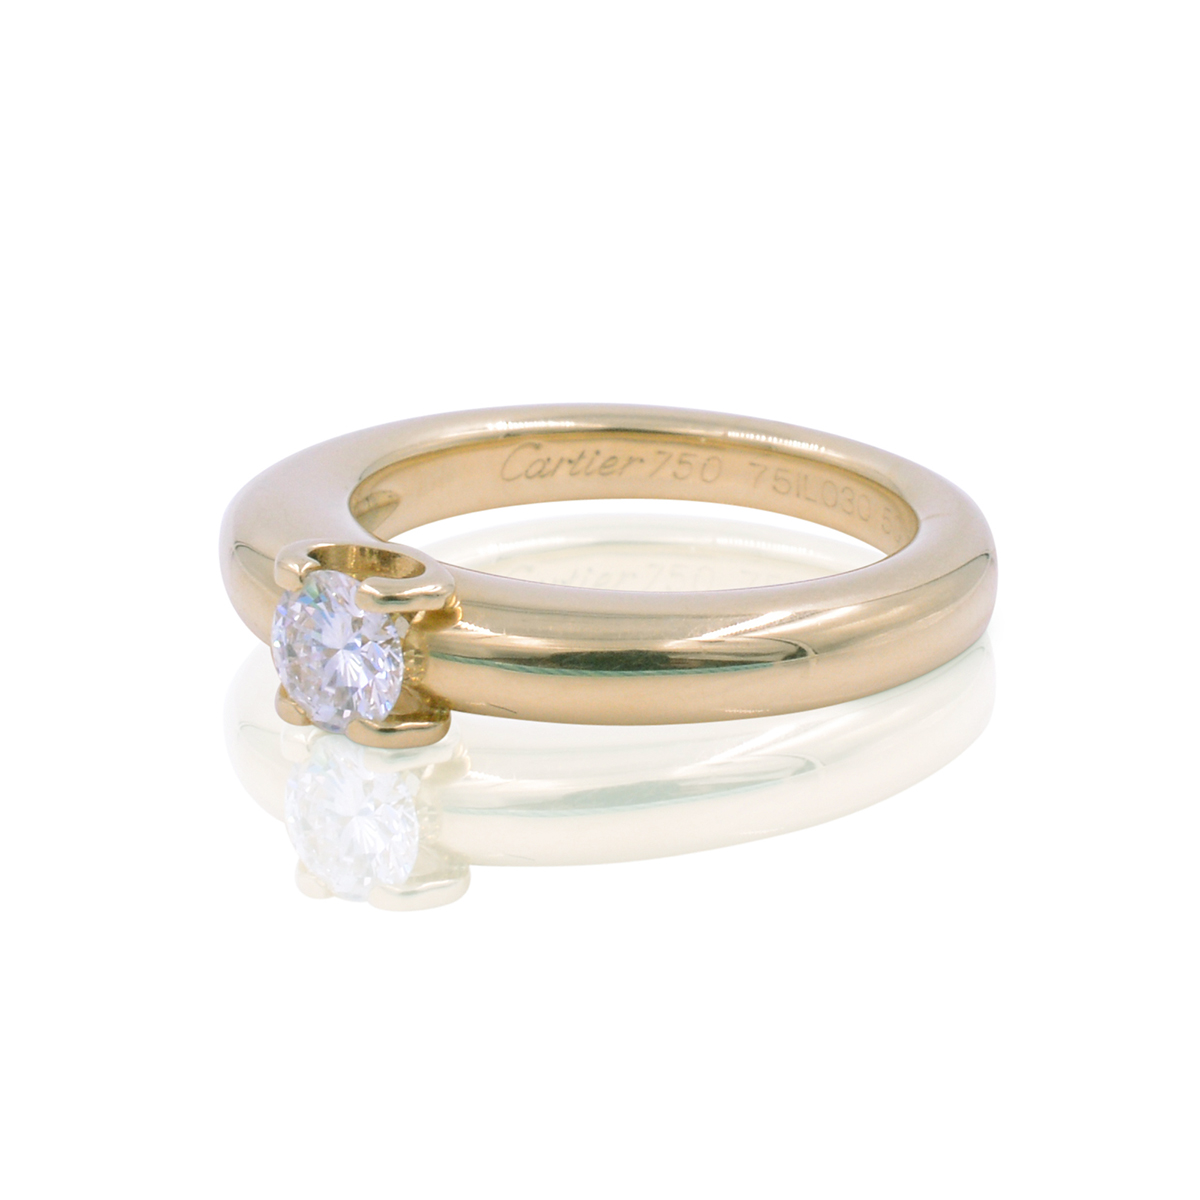 29519407e418e Cartier 18K Yellow Gold with 0.33ct Round Cut Diamond Engagement Ring Size  5.25